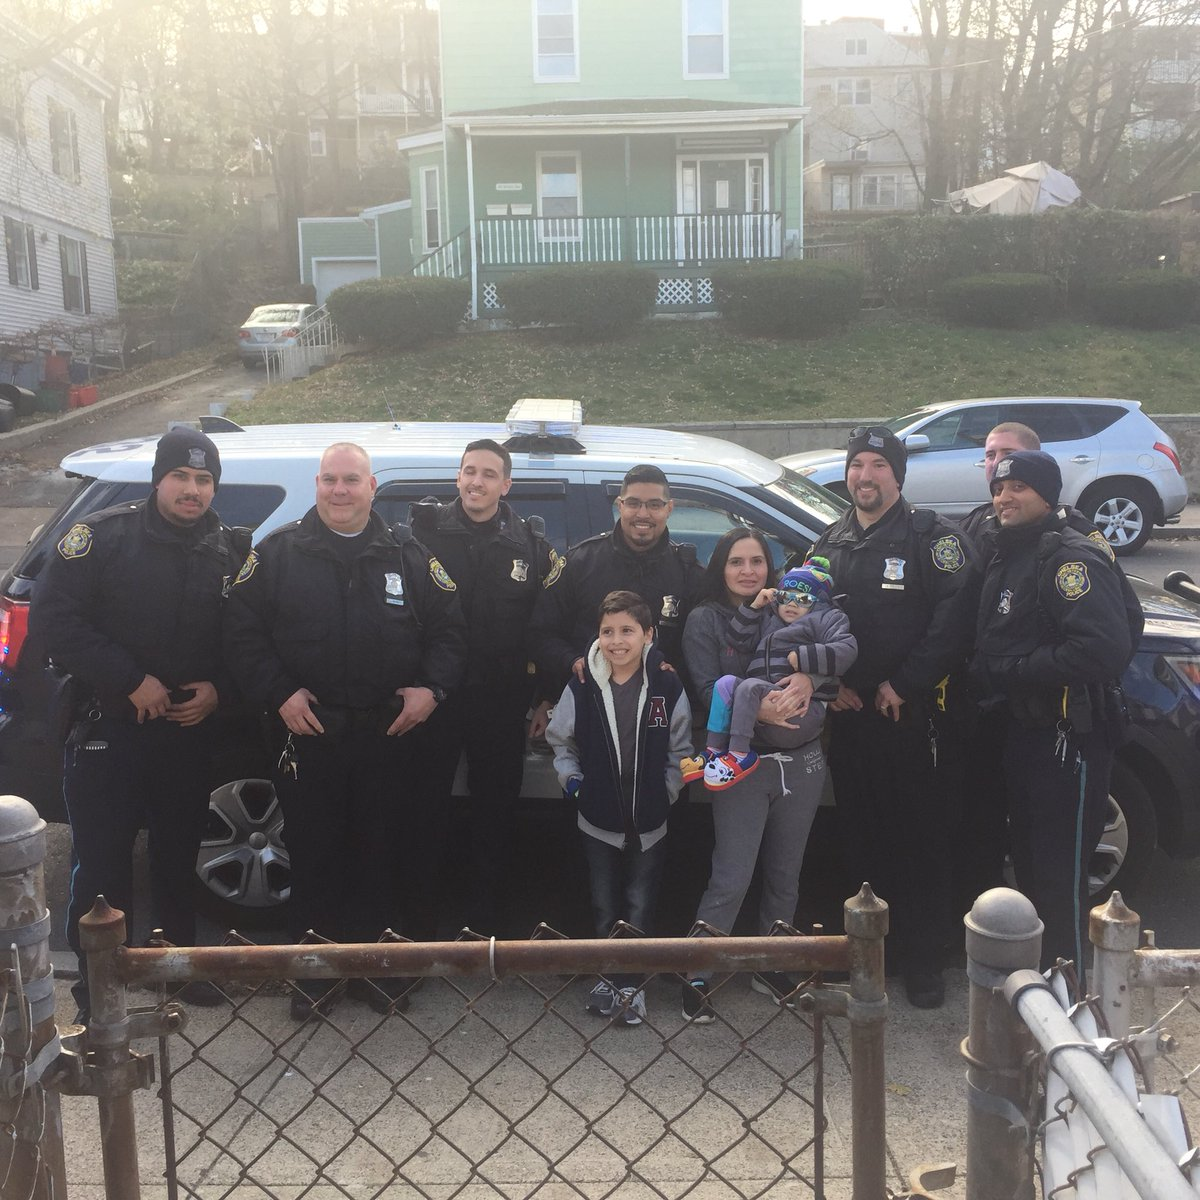 Police officers visit Massachusetts boy with brain cancer